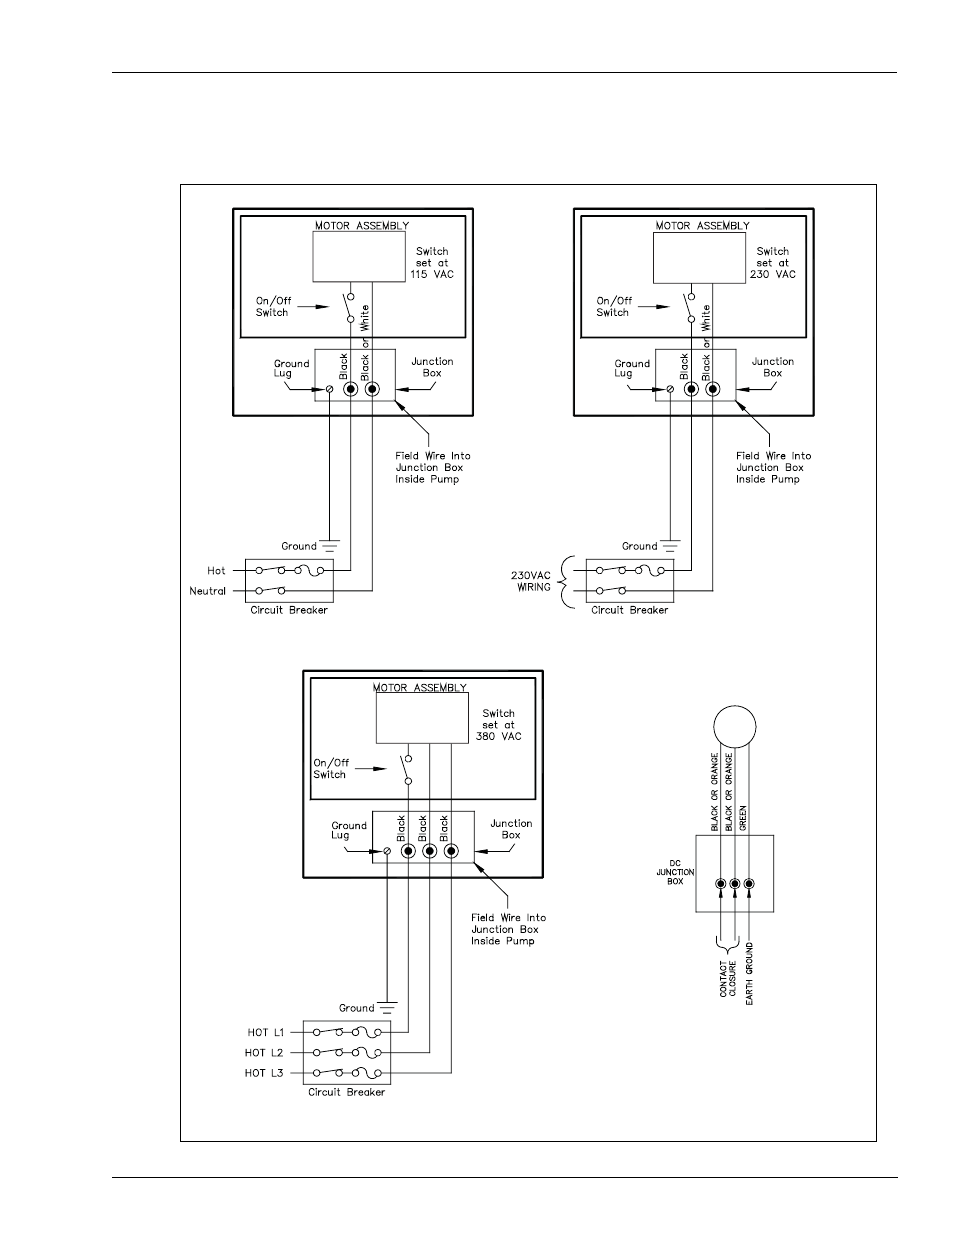 wiring diagram gasboy 580 series user manual page 21 50 rh manualsdir com  gasboy atlas wiring